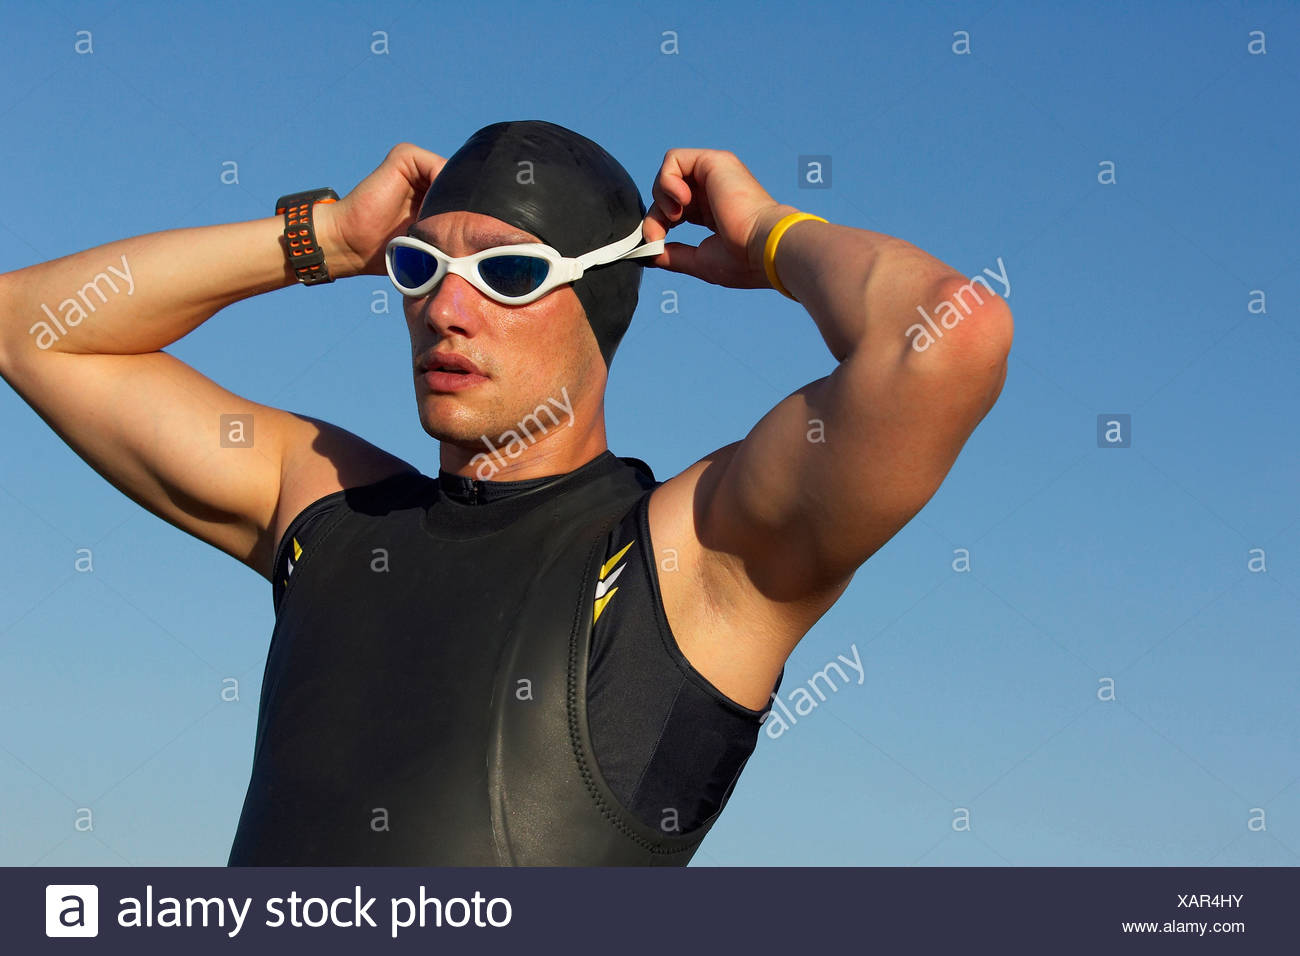 A male athelete preparing to swim while training for a triathlon. - Stock Image